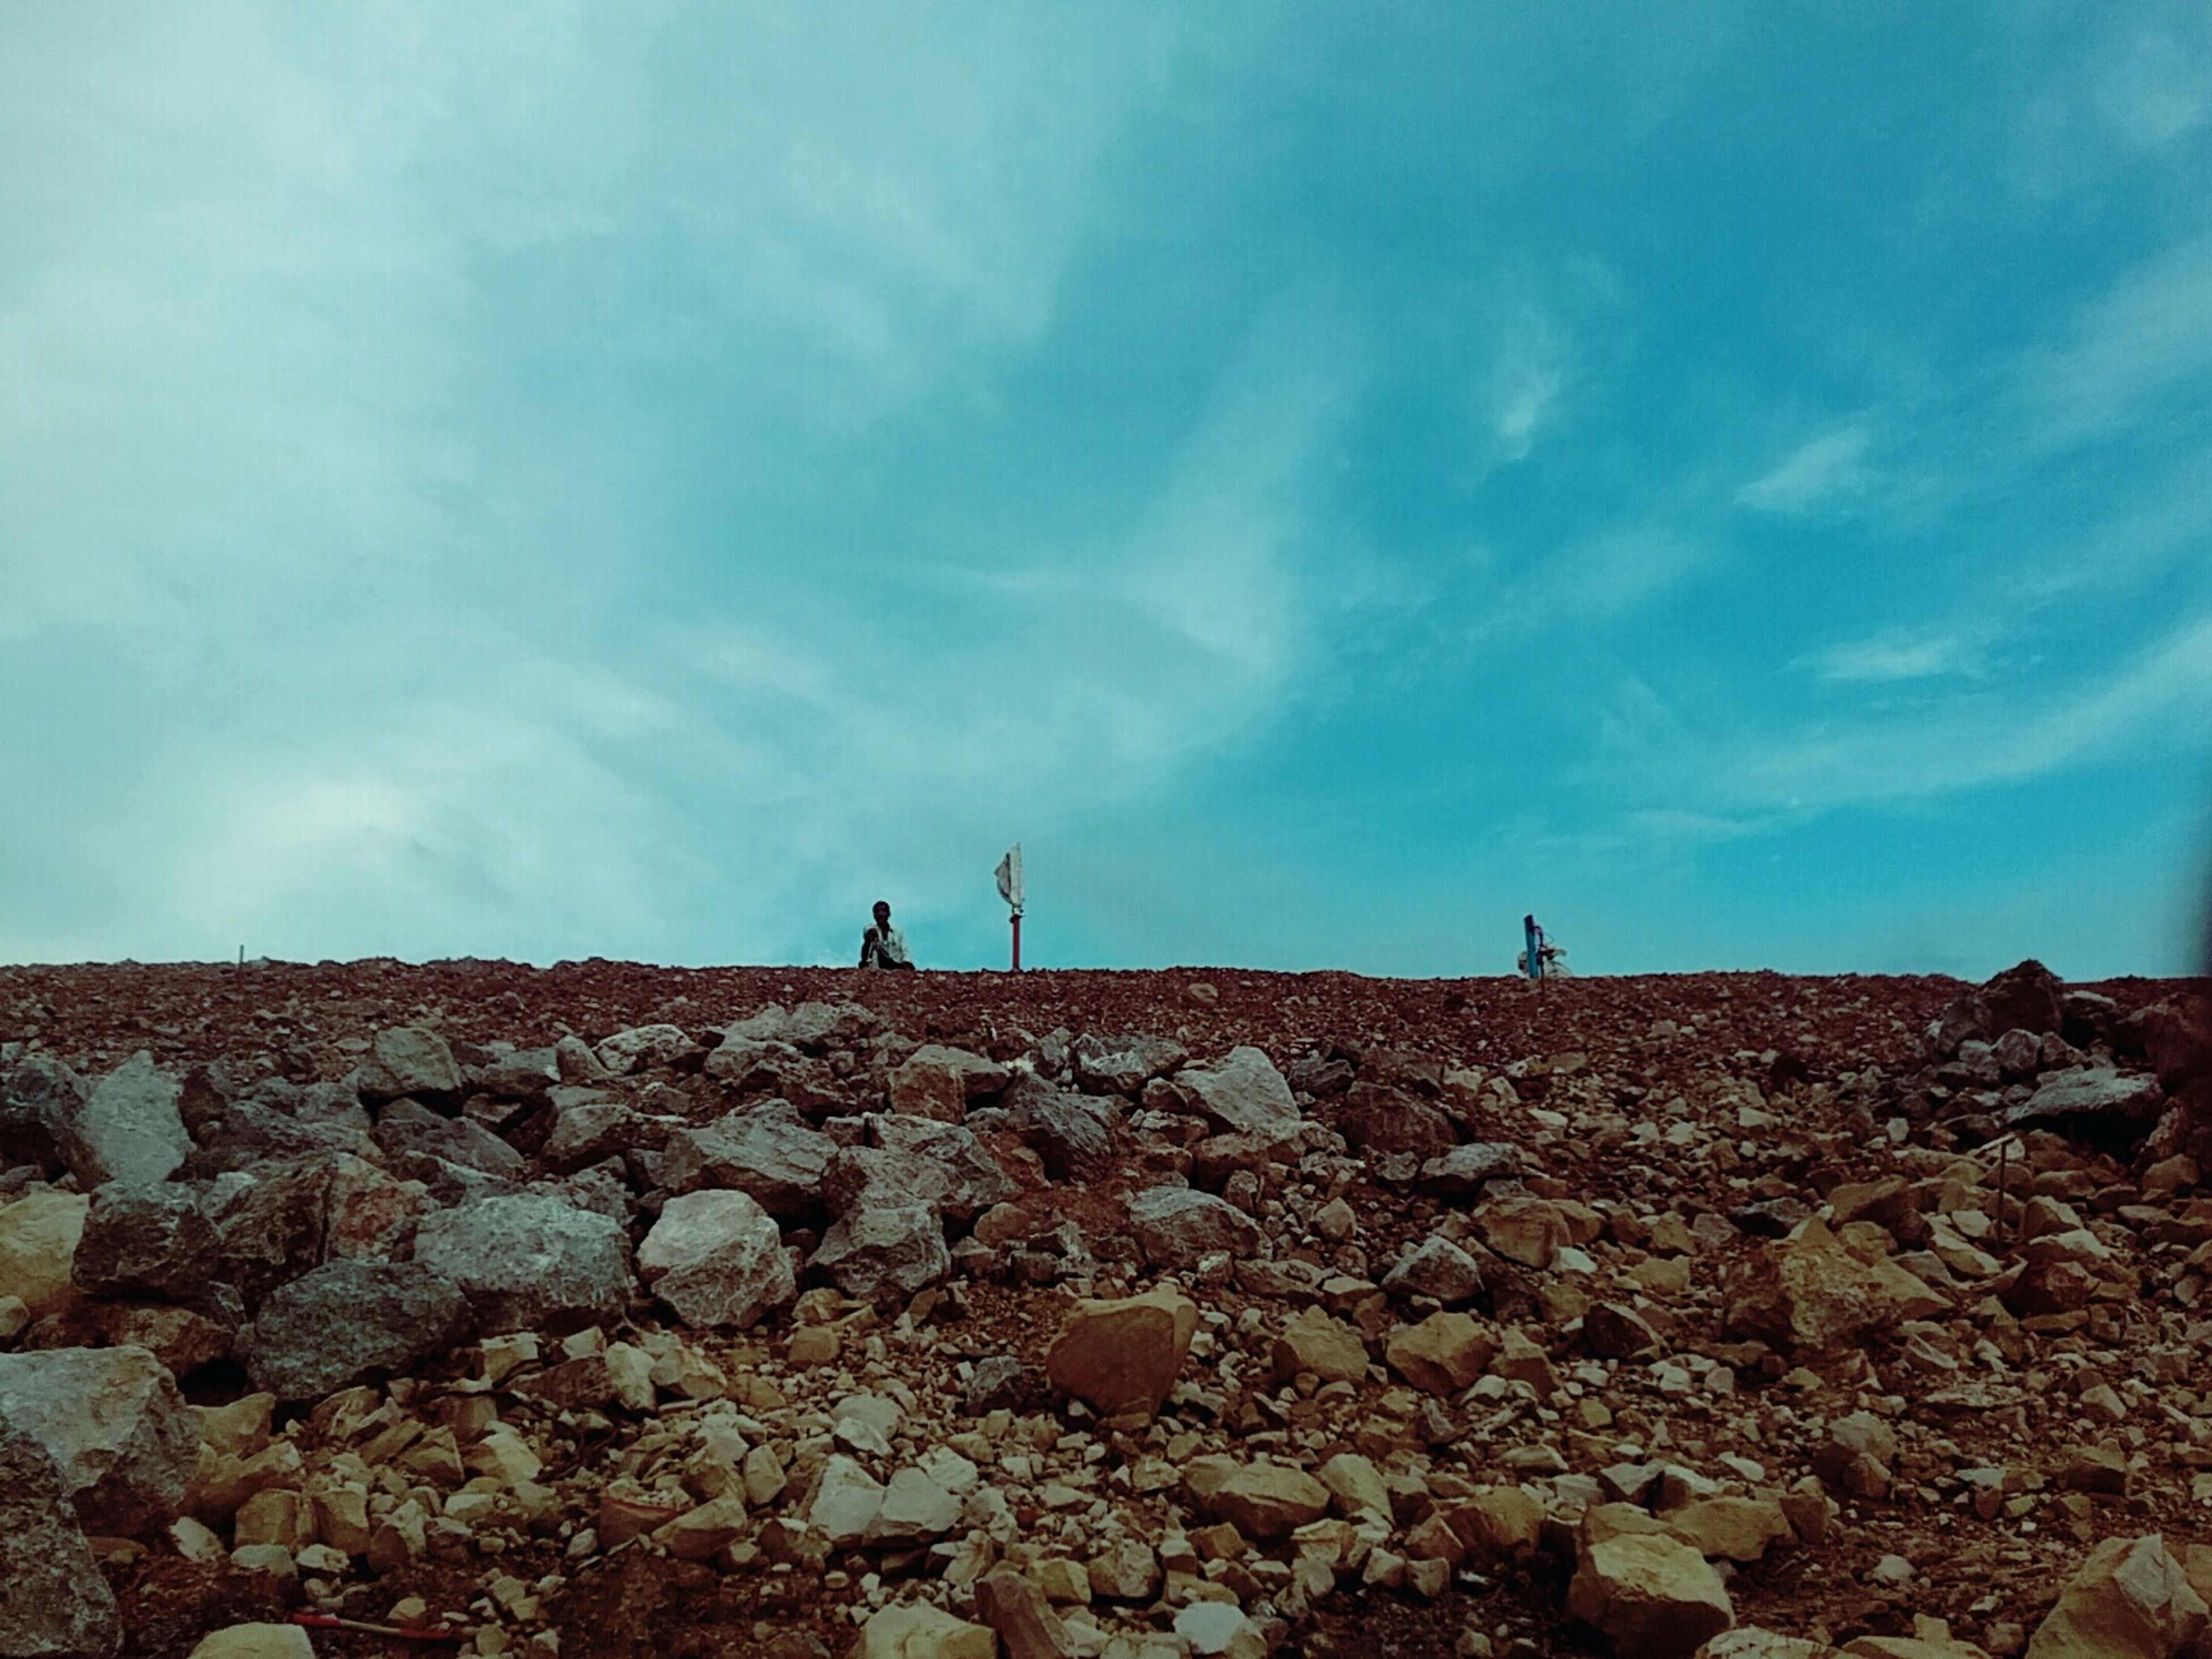 sky, leisure activity, lifestyles, men, rock - object, low angle view, blue, nature, full length, tranquility, cloud - sky, beauty in nature, tranquil scene, scenics, unrecognizable person, day, rock